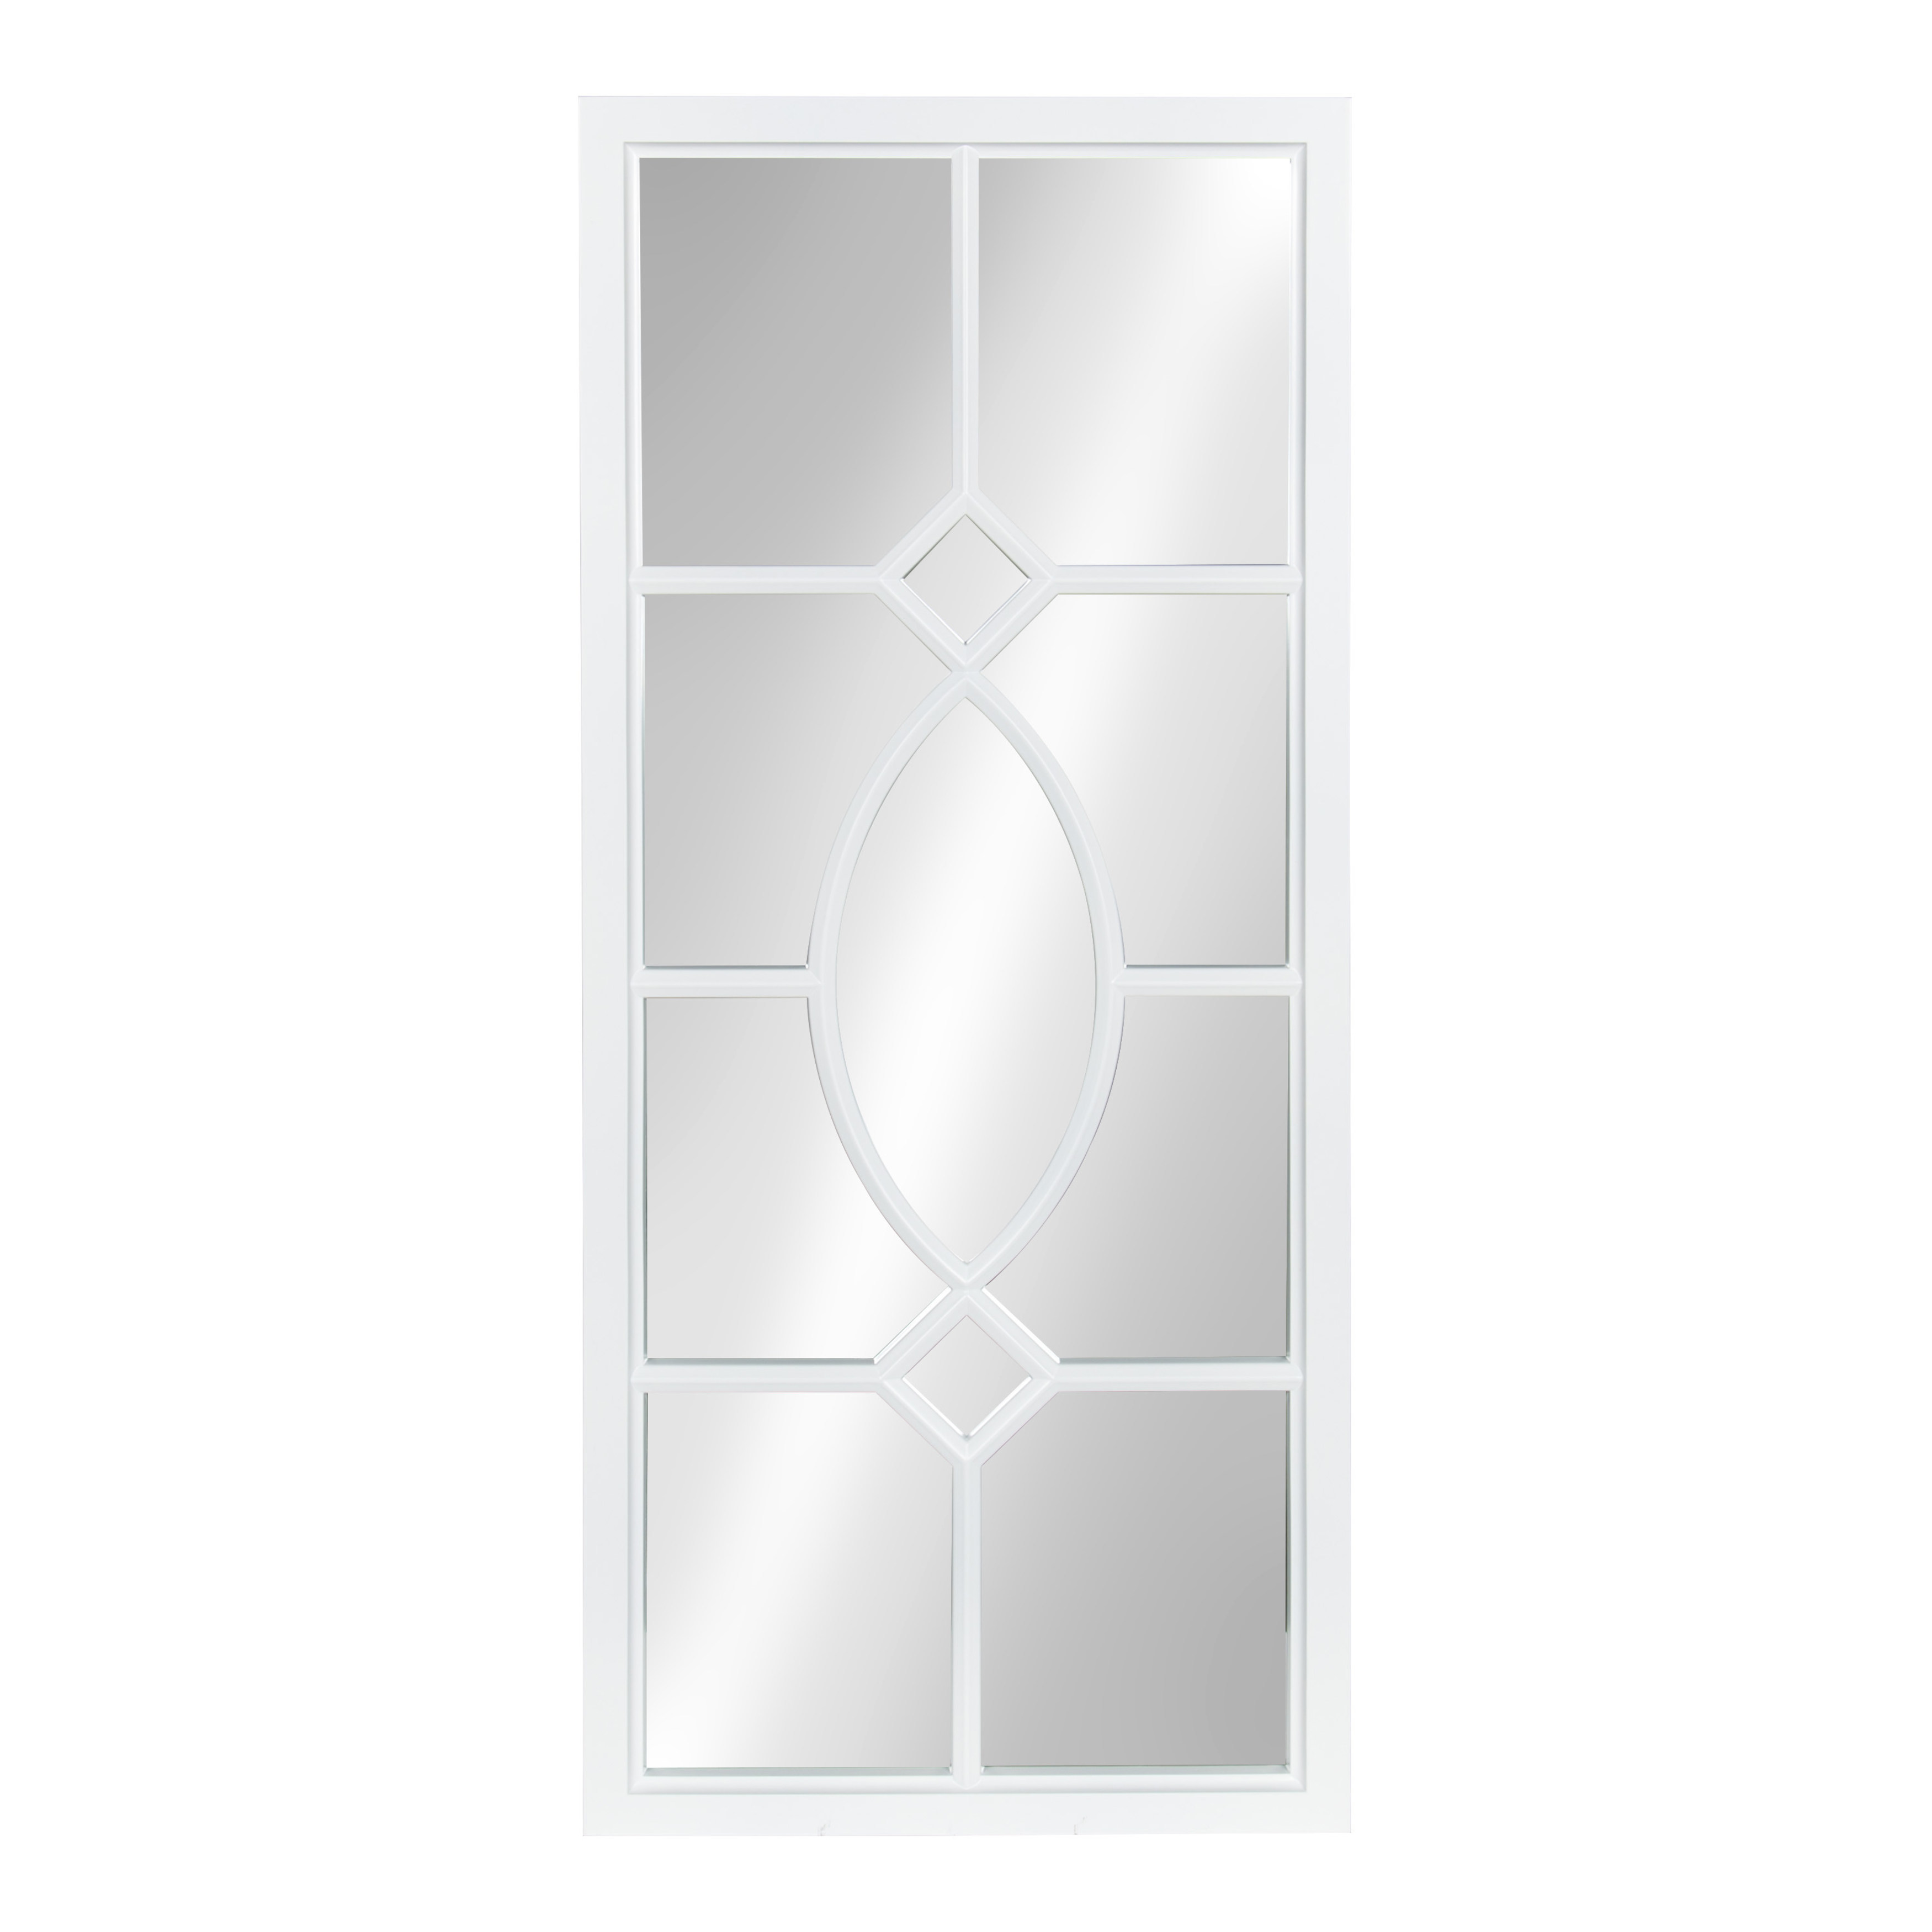 Kate and Laurel Cassat Window Wall Accent Mirror, White by Uniek